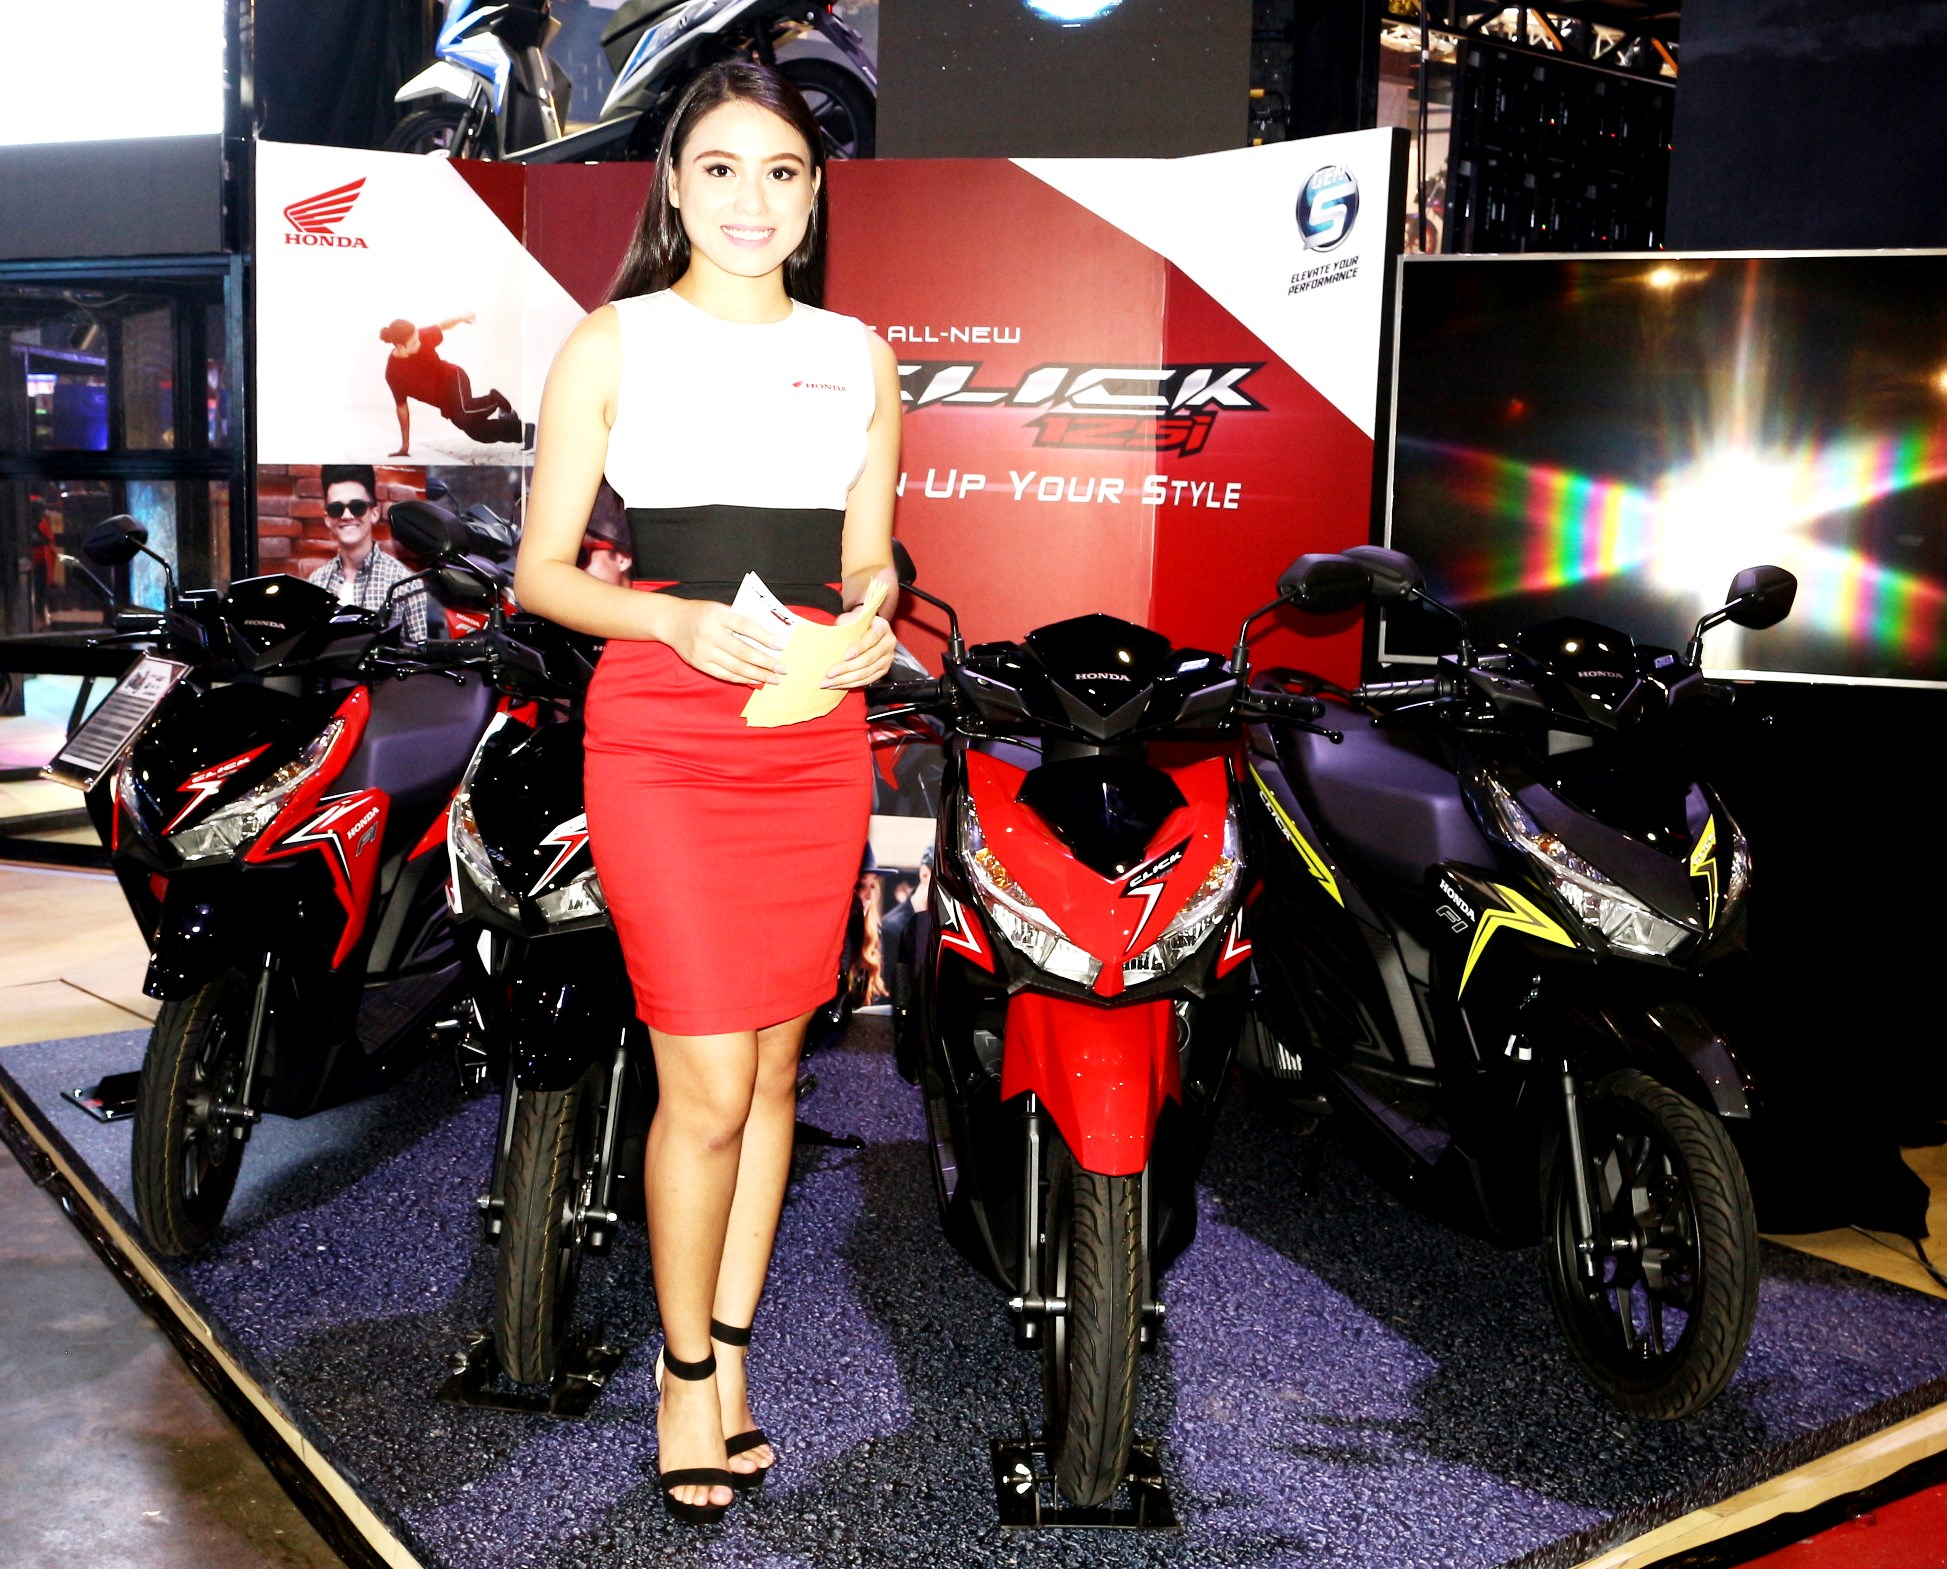 honda philippines launched   models   fit  filipino lifestyle  racing